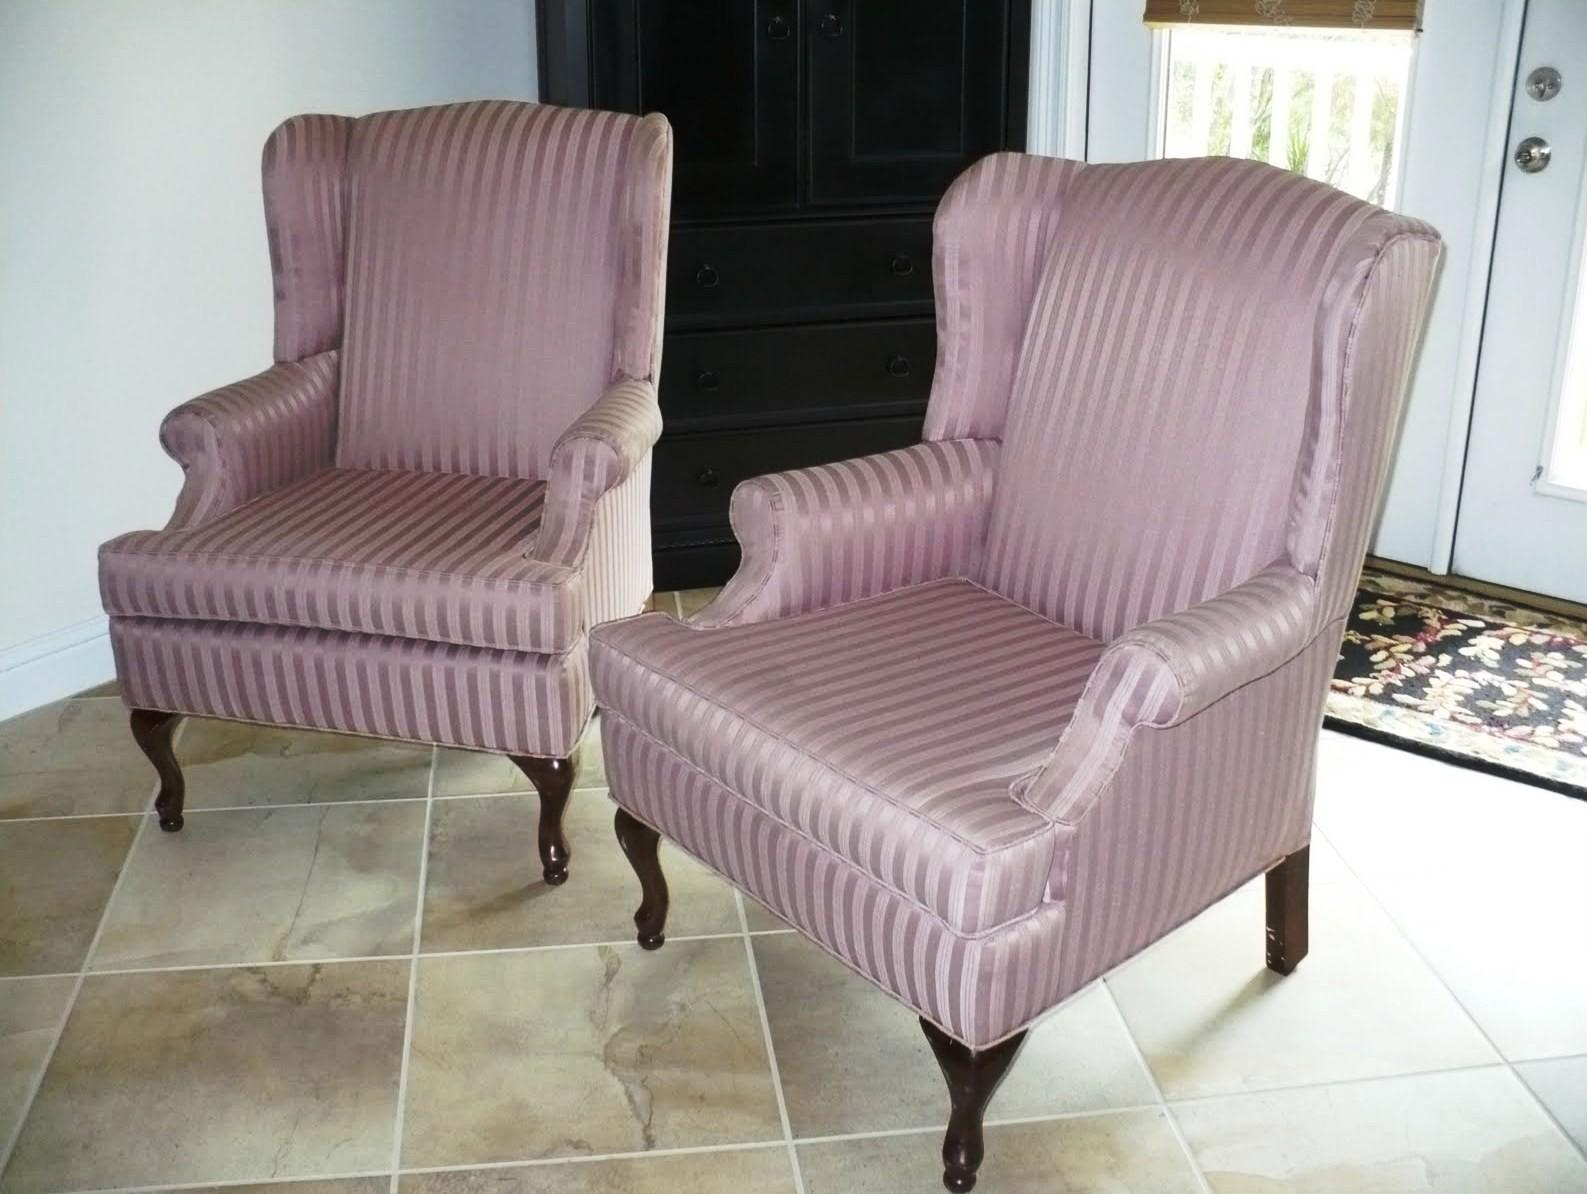 Barrel Chair Slipcovers Old Remodel Home